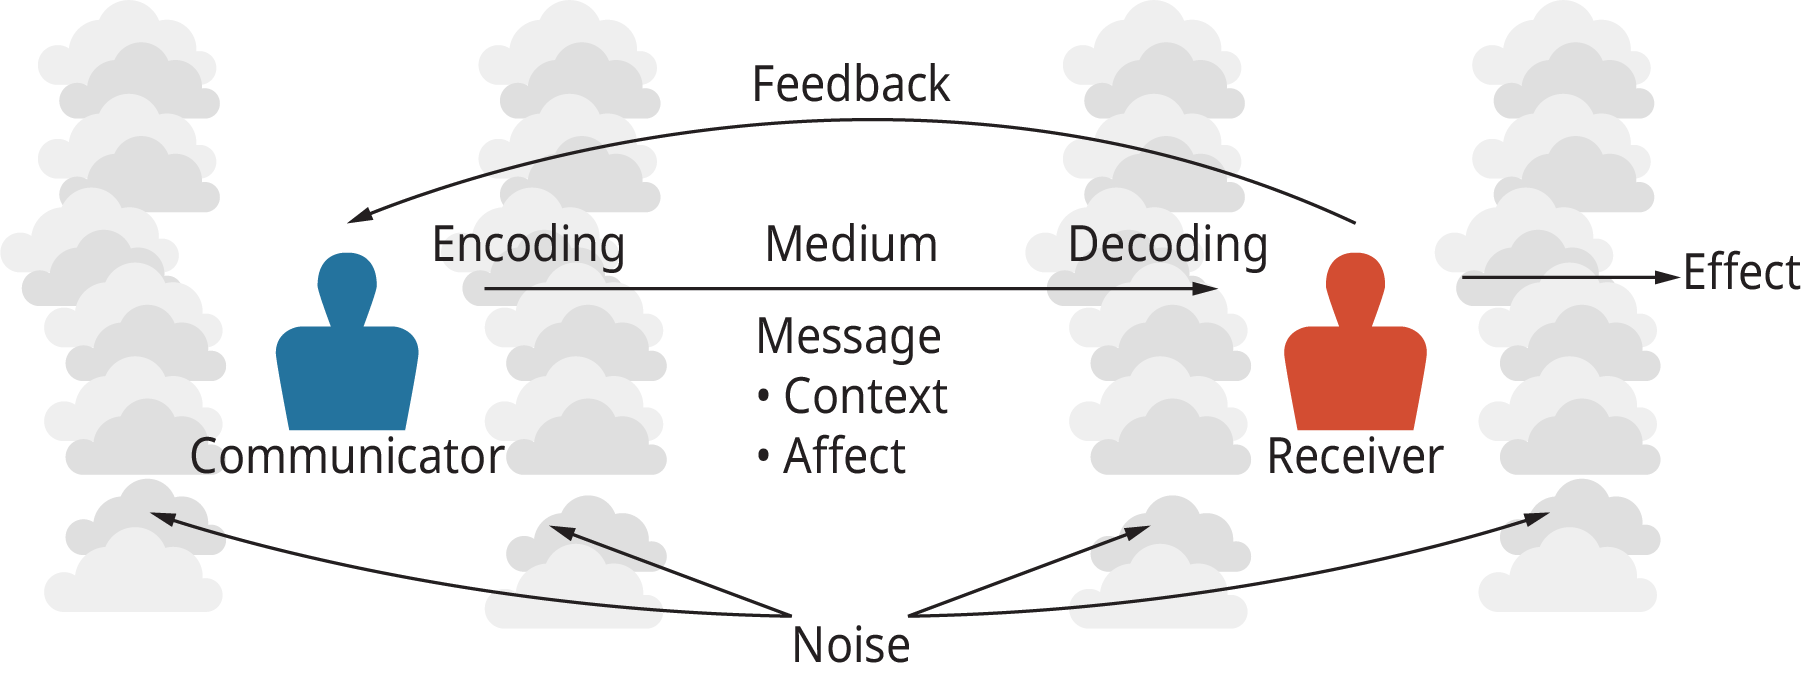 An illustration shows the process of dissemination of information through the basic model of communication.